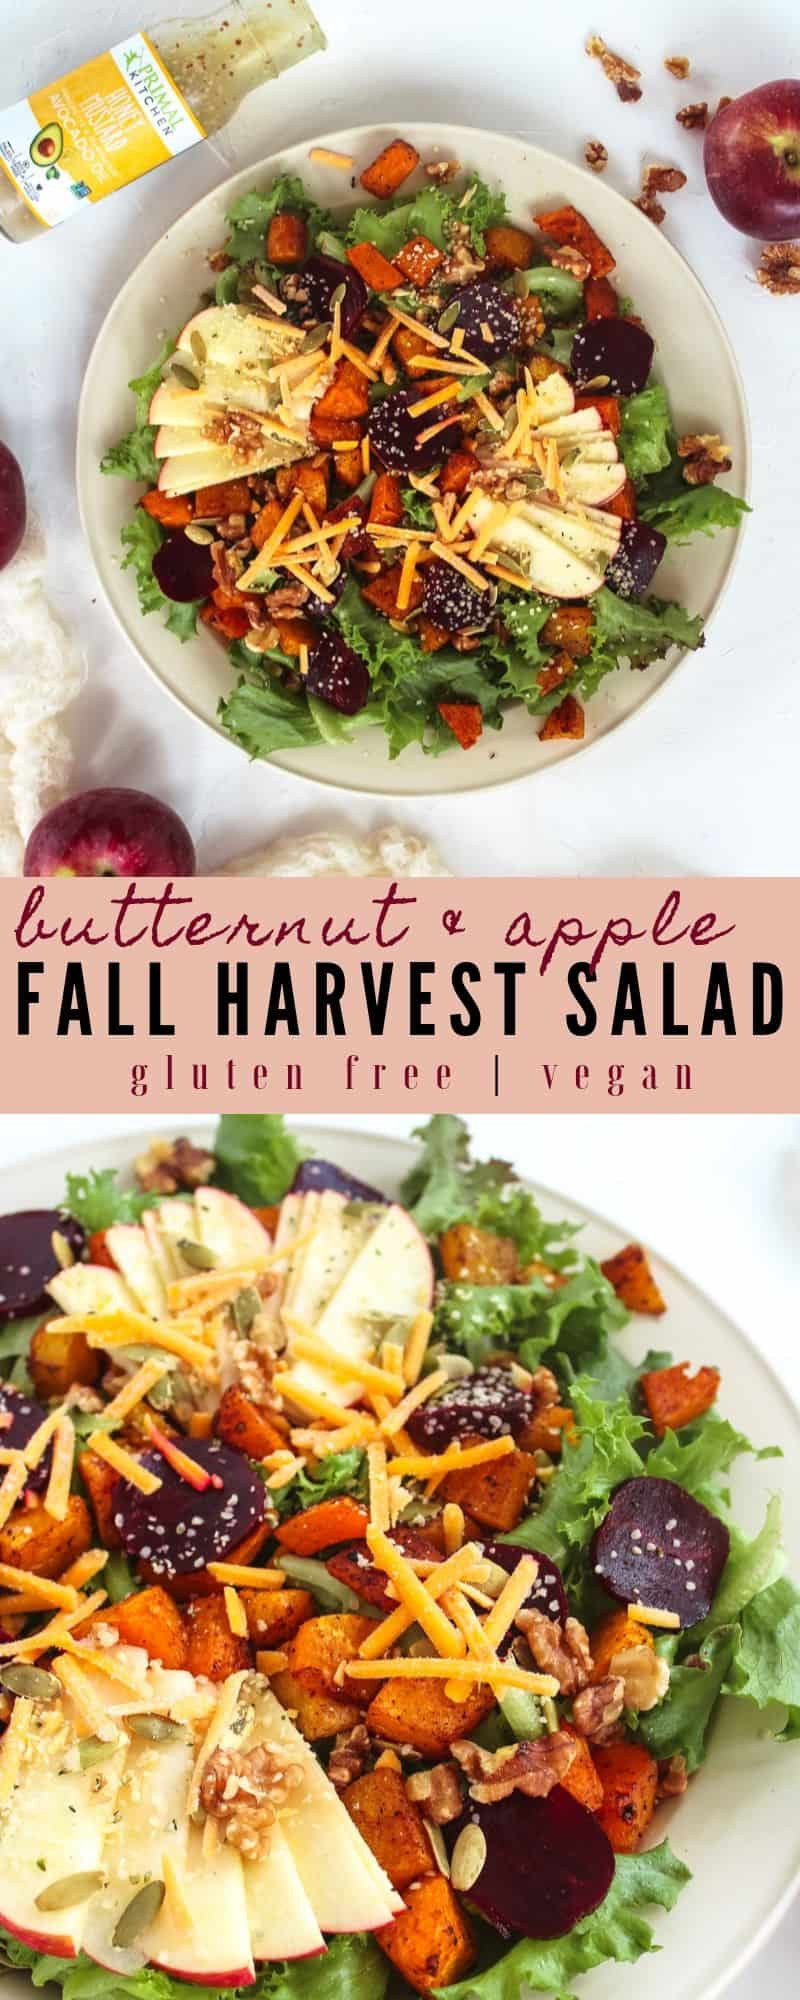 This Butternut Squash & Apple Fall Harvest Salad will definitely put you in the mood for Fall! Made with seasonal produce, this salad is vegan & gluten free